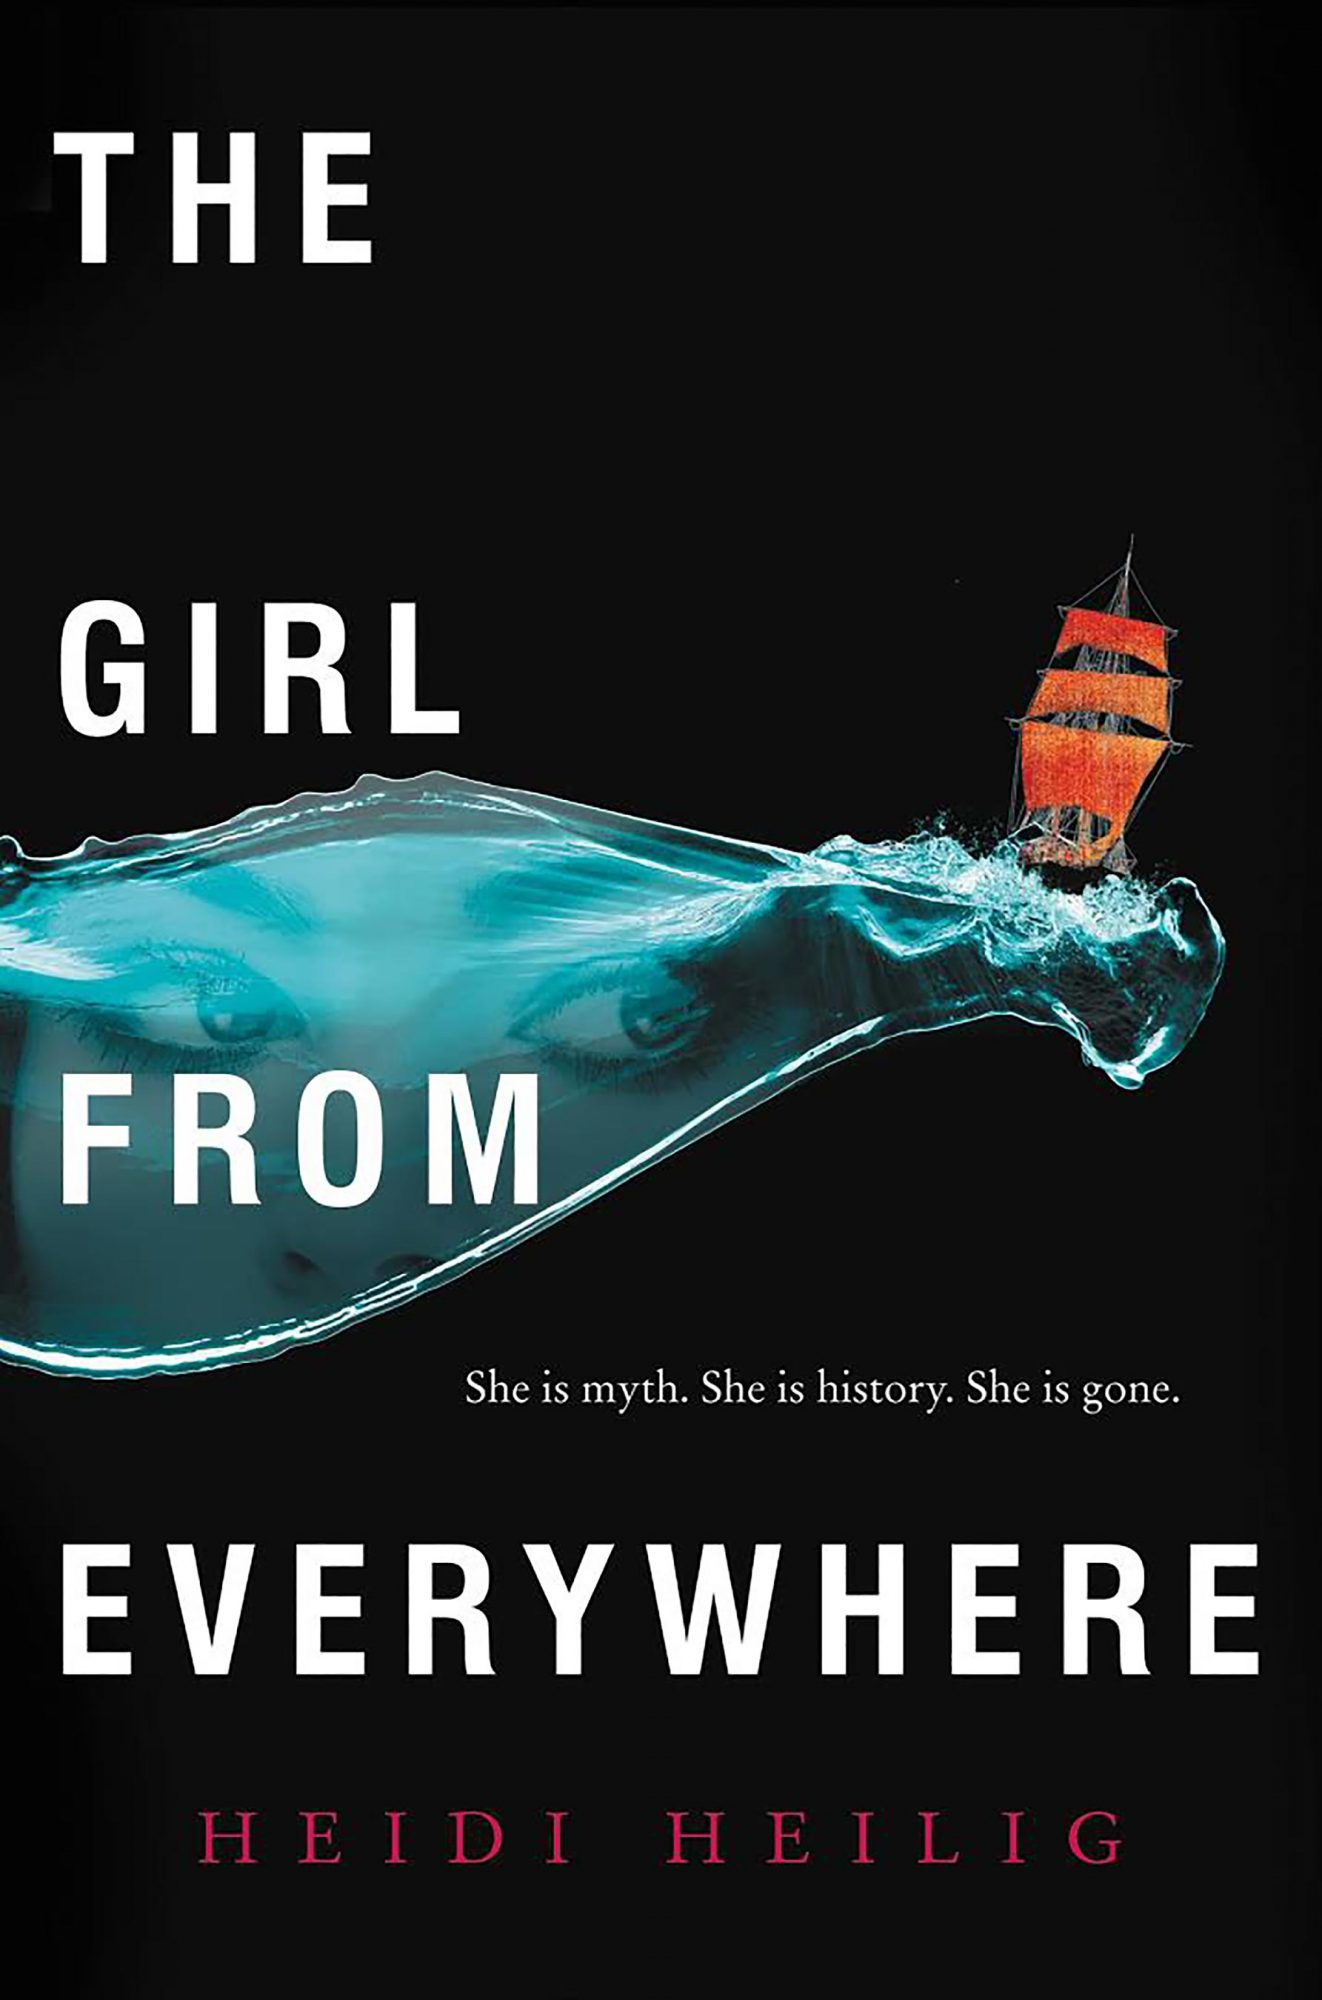 The Girl From Everywhere by Heidi Heilig CR: HarperCollins